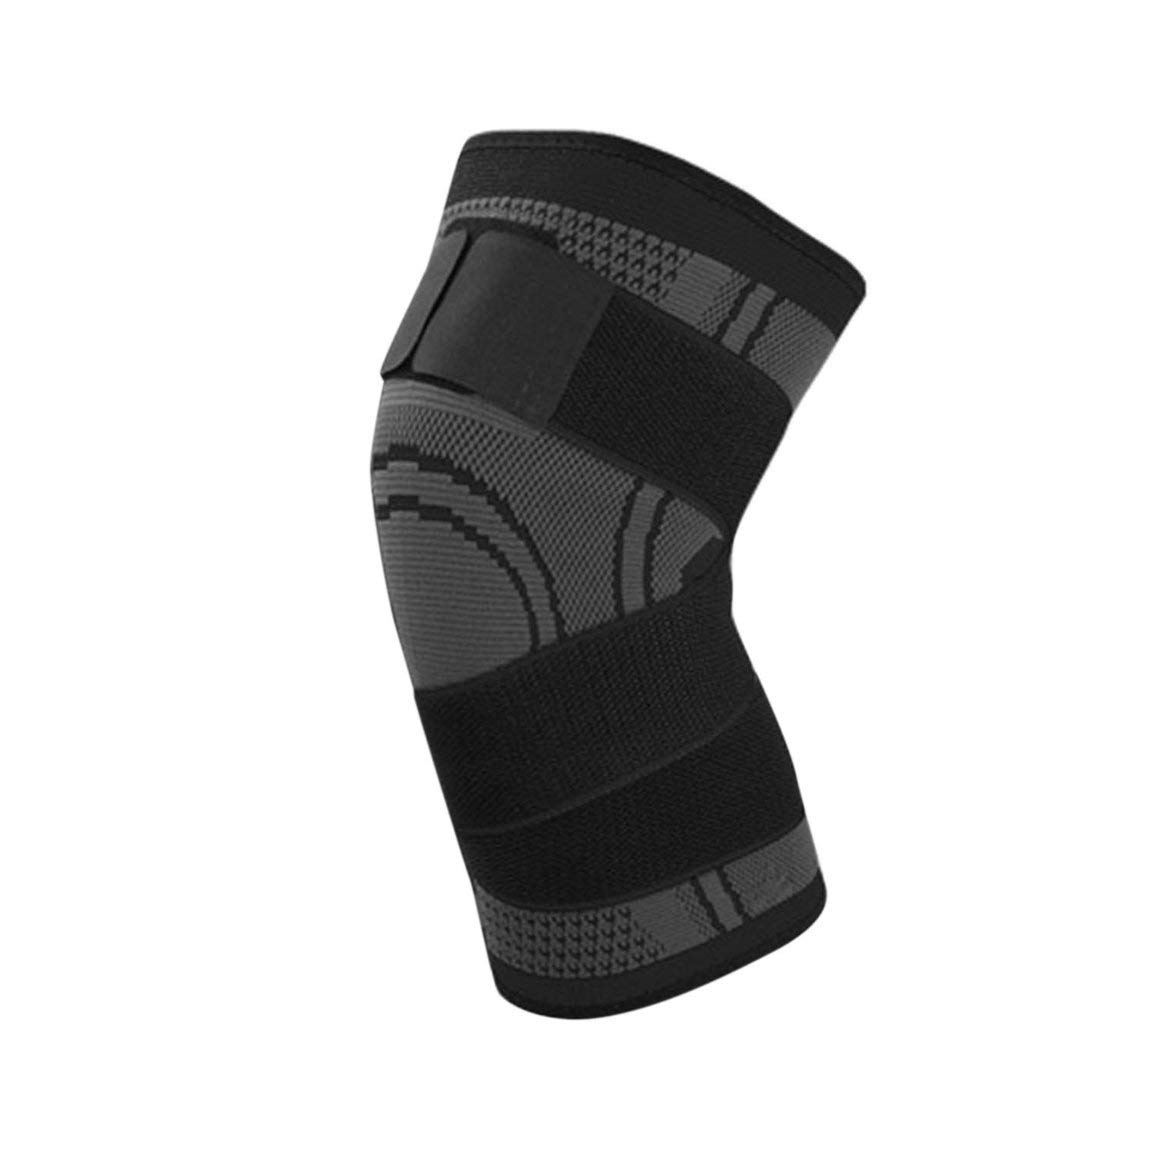 Fantasyworld 3D Pressurized Fitness Bandage Knee Support Brace Elastic Nylon Sports Compression Pad Sleeve for Running Cycling